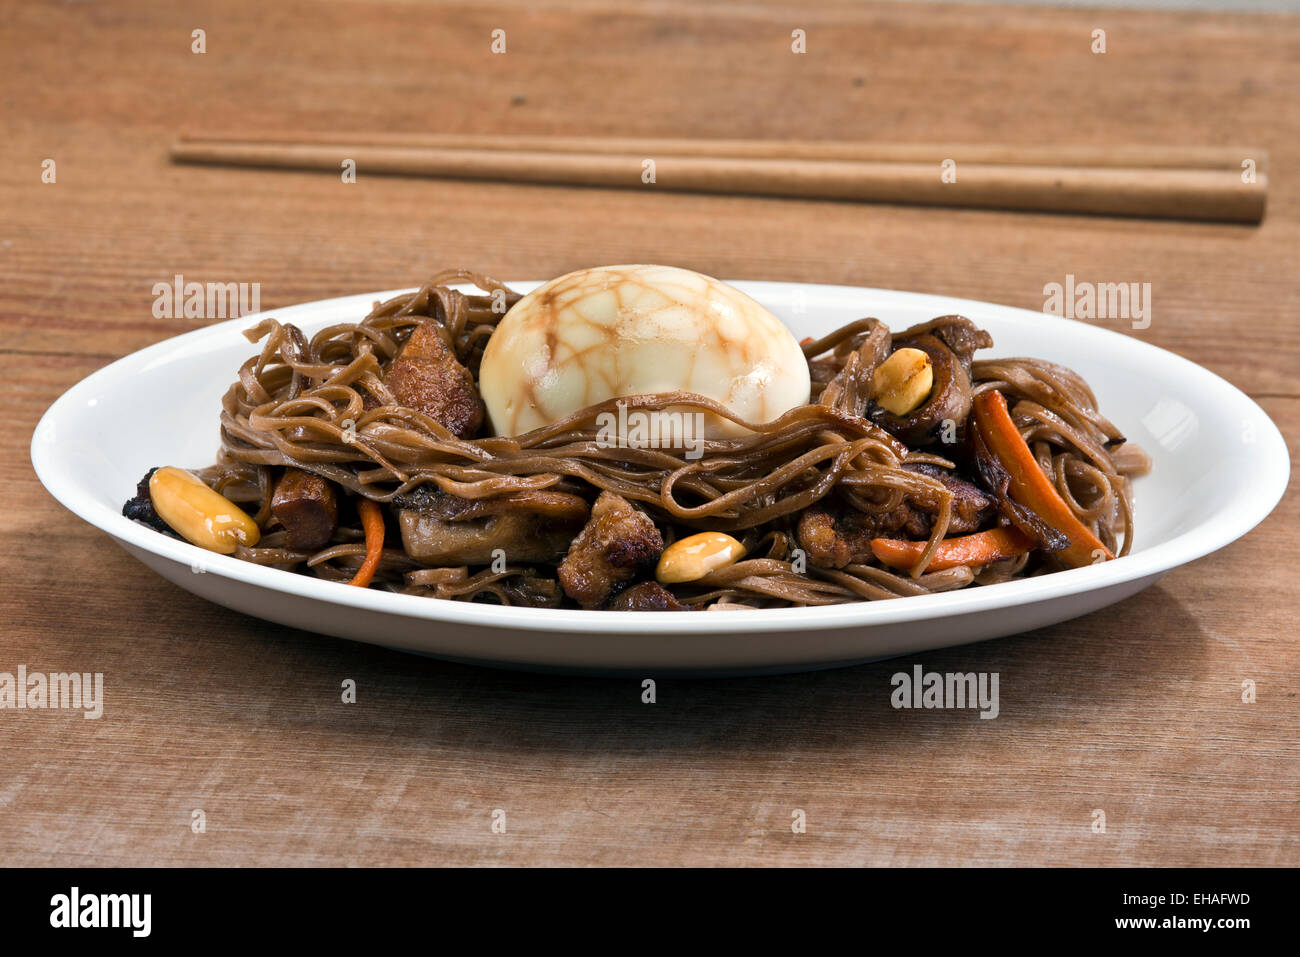 Traditional Chinese tea egg served on a nest of stir fried soba noodles with pork, oyster mushroom and peanuts. - Stock Image